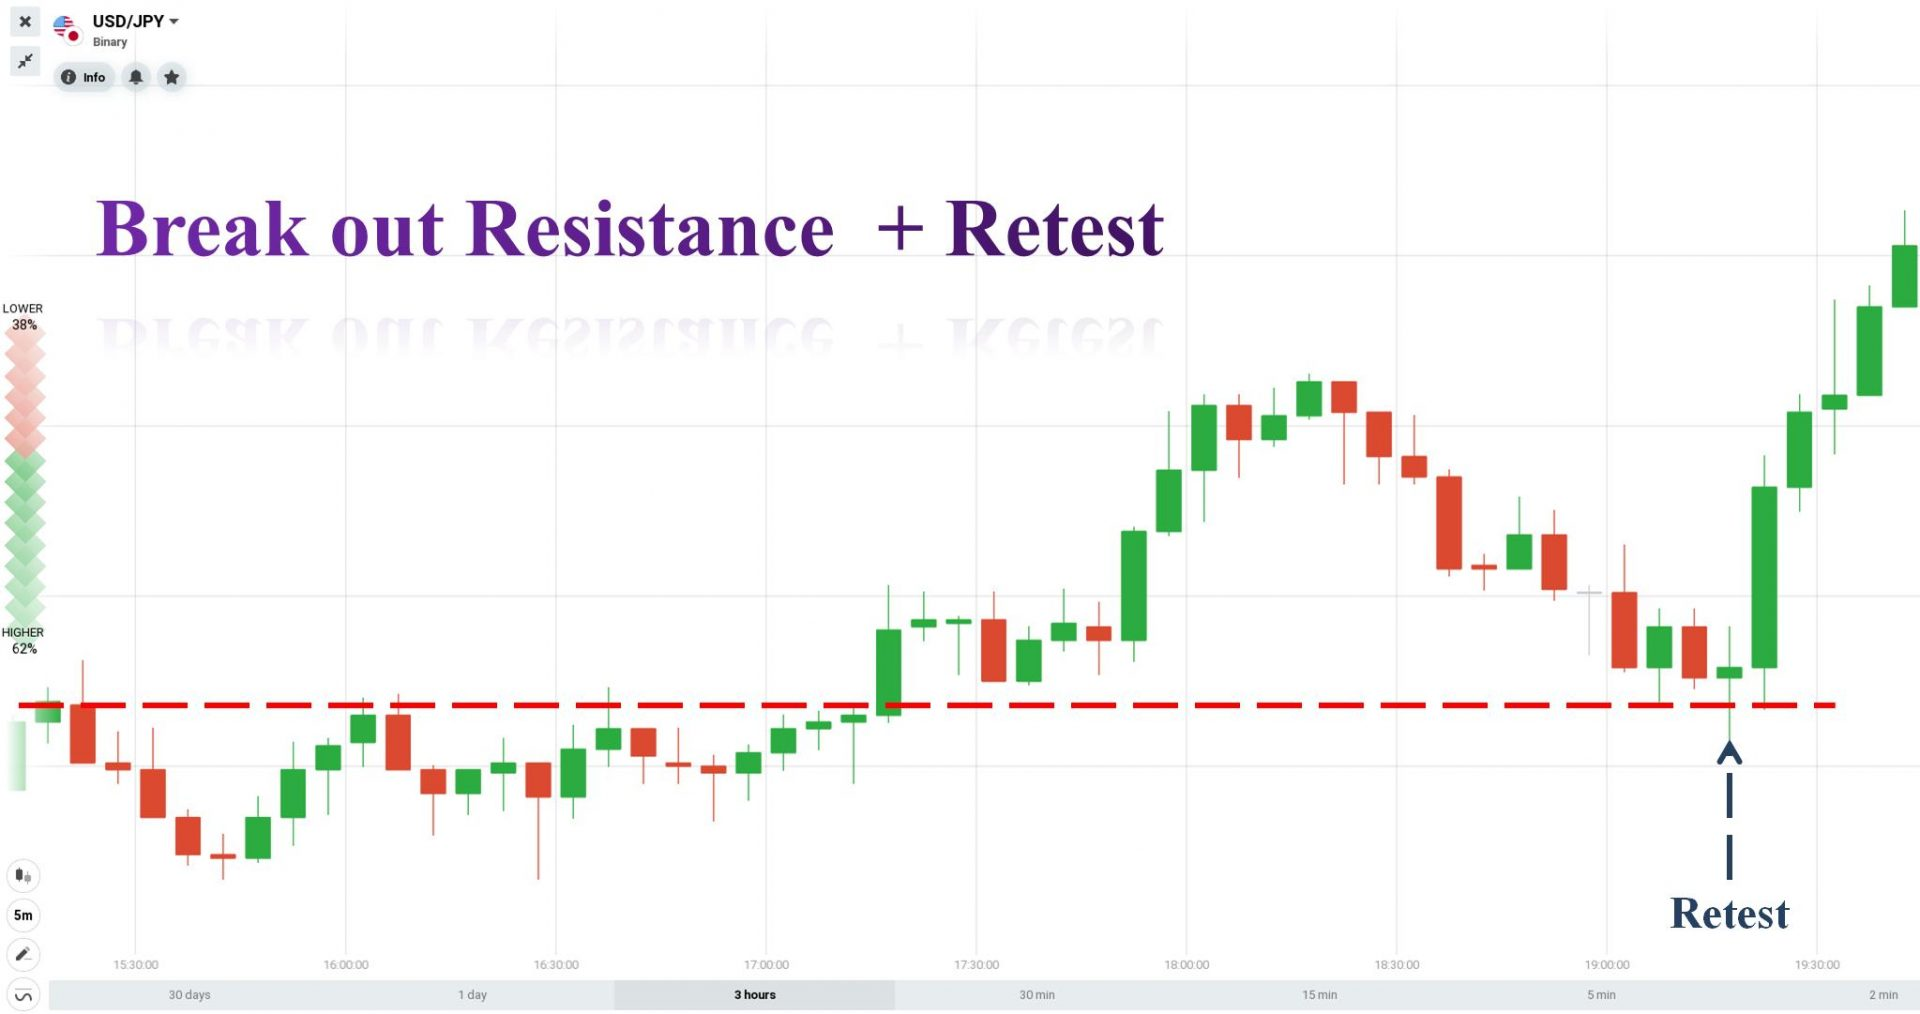 The price breaks out of the resistance